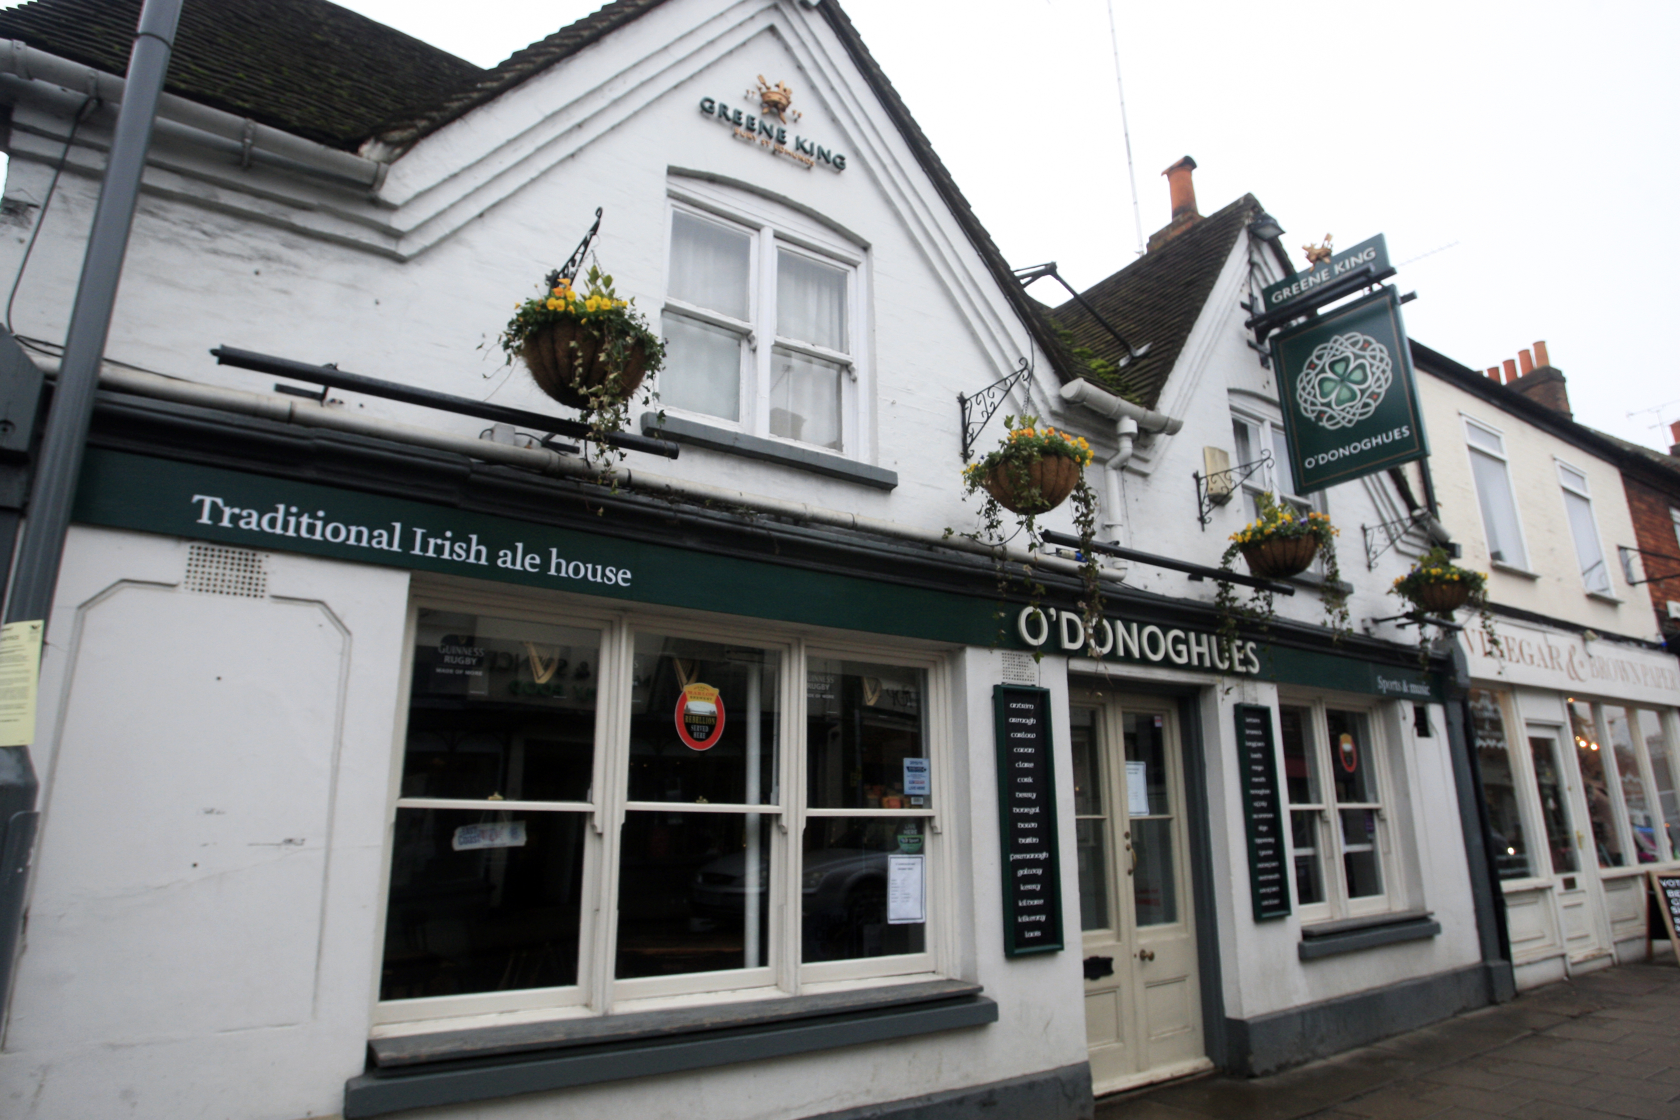 Popular pub's new name confirmed after celebrity chef takeover